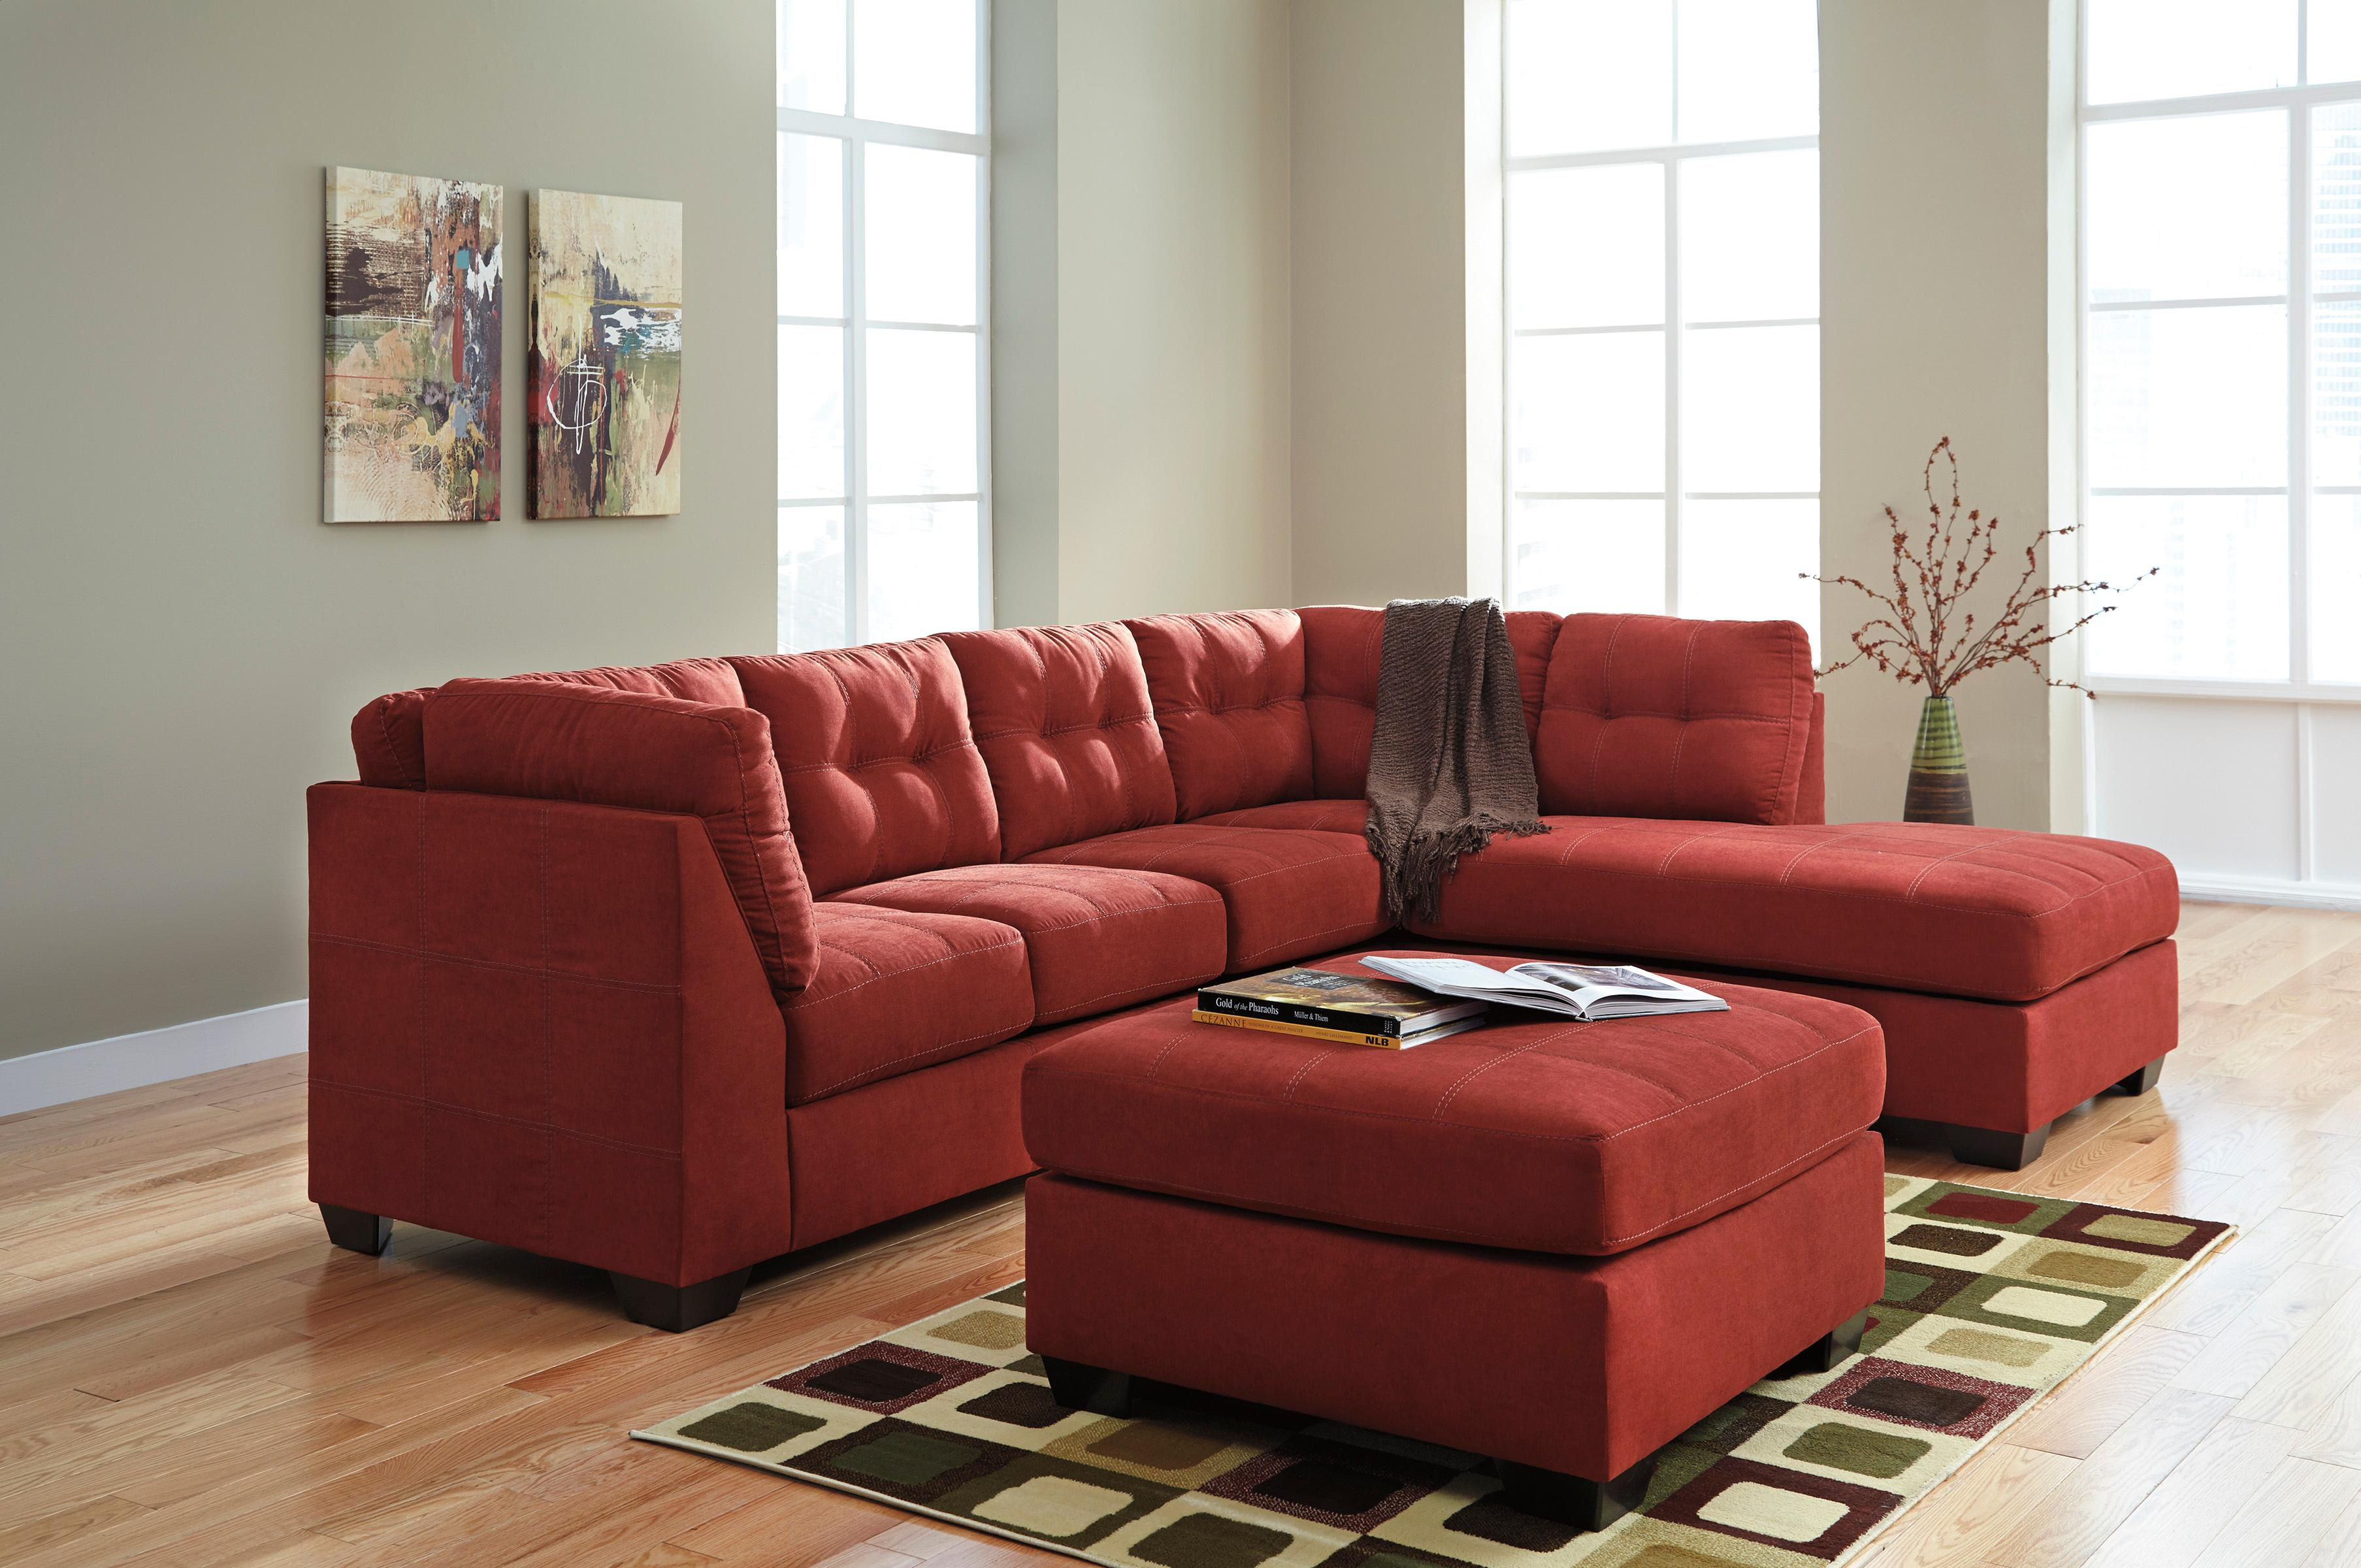 Benchcraft Maier - Sienna Stationary Living Room Group - Item Number: 45202 Living Room Group 1